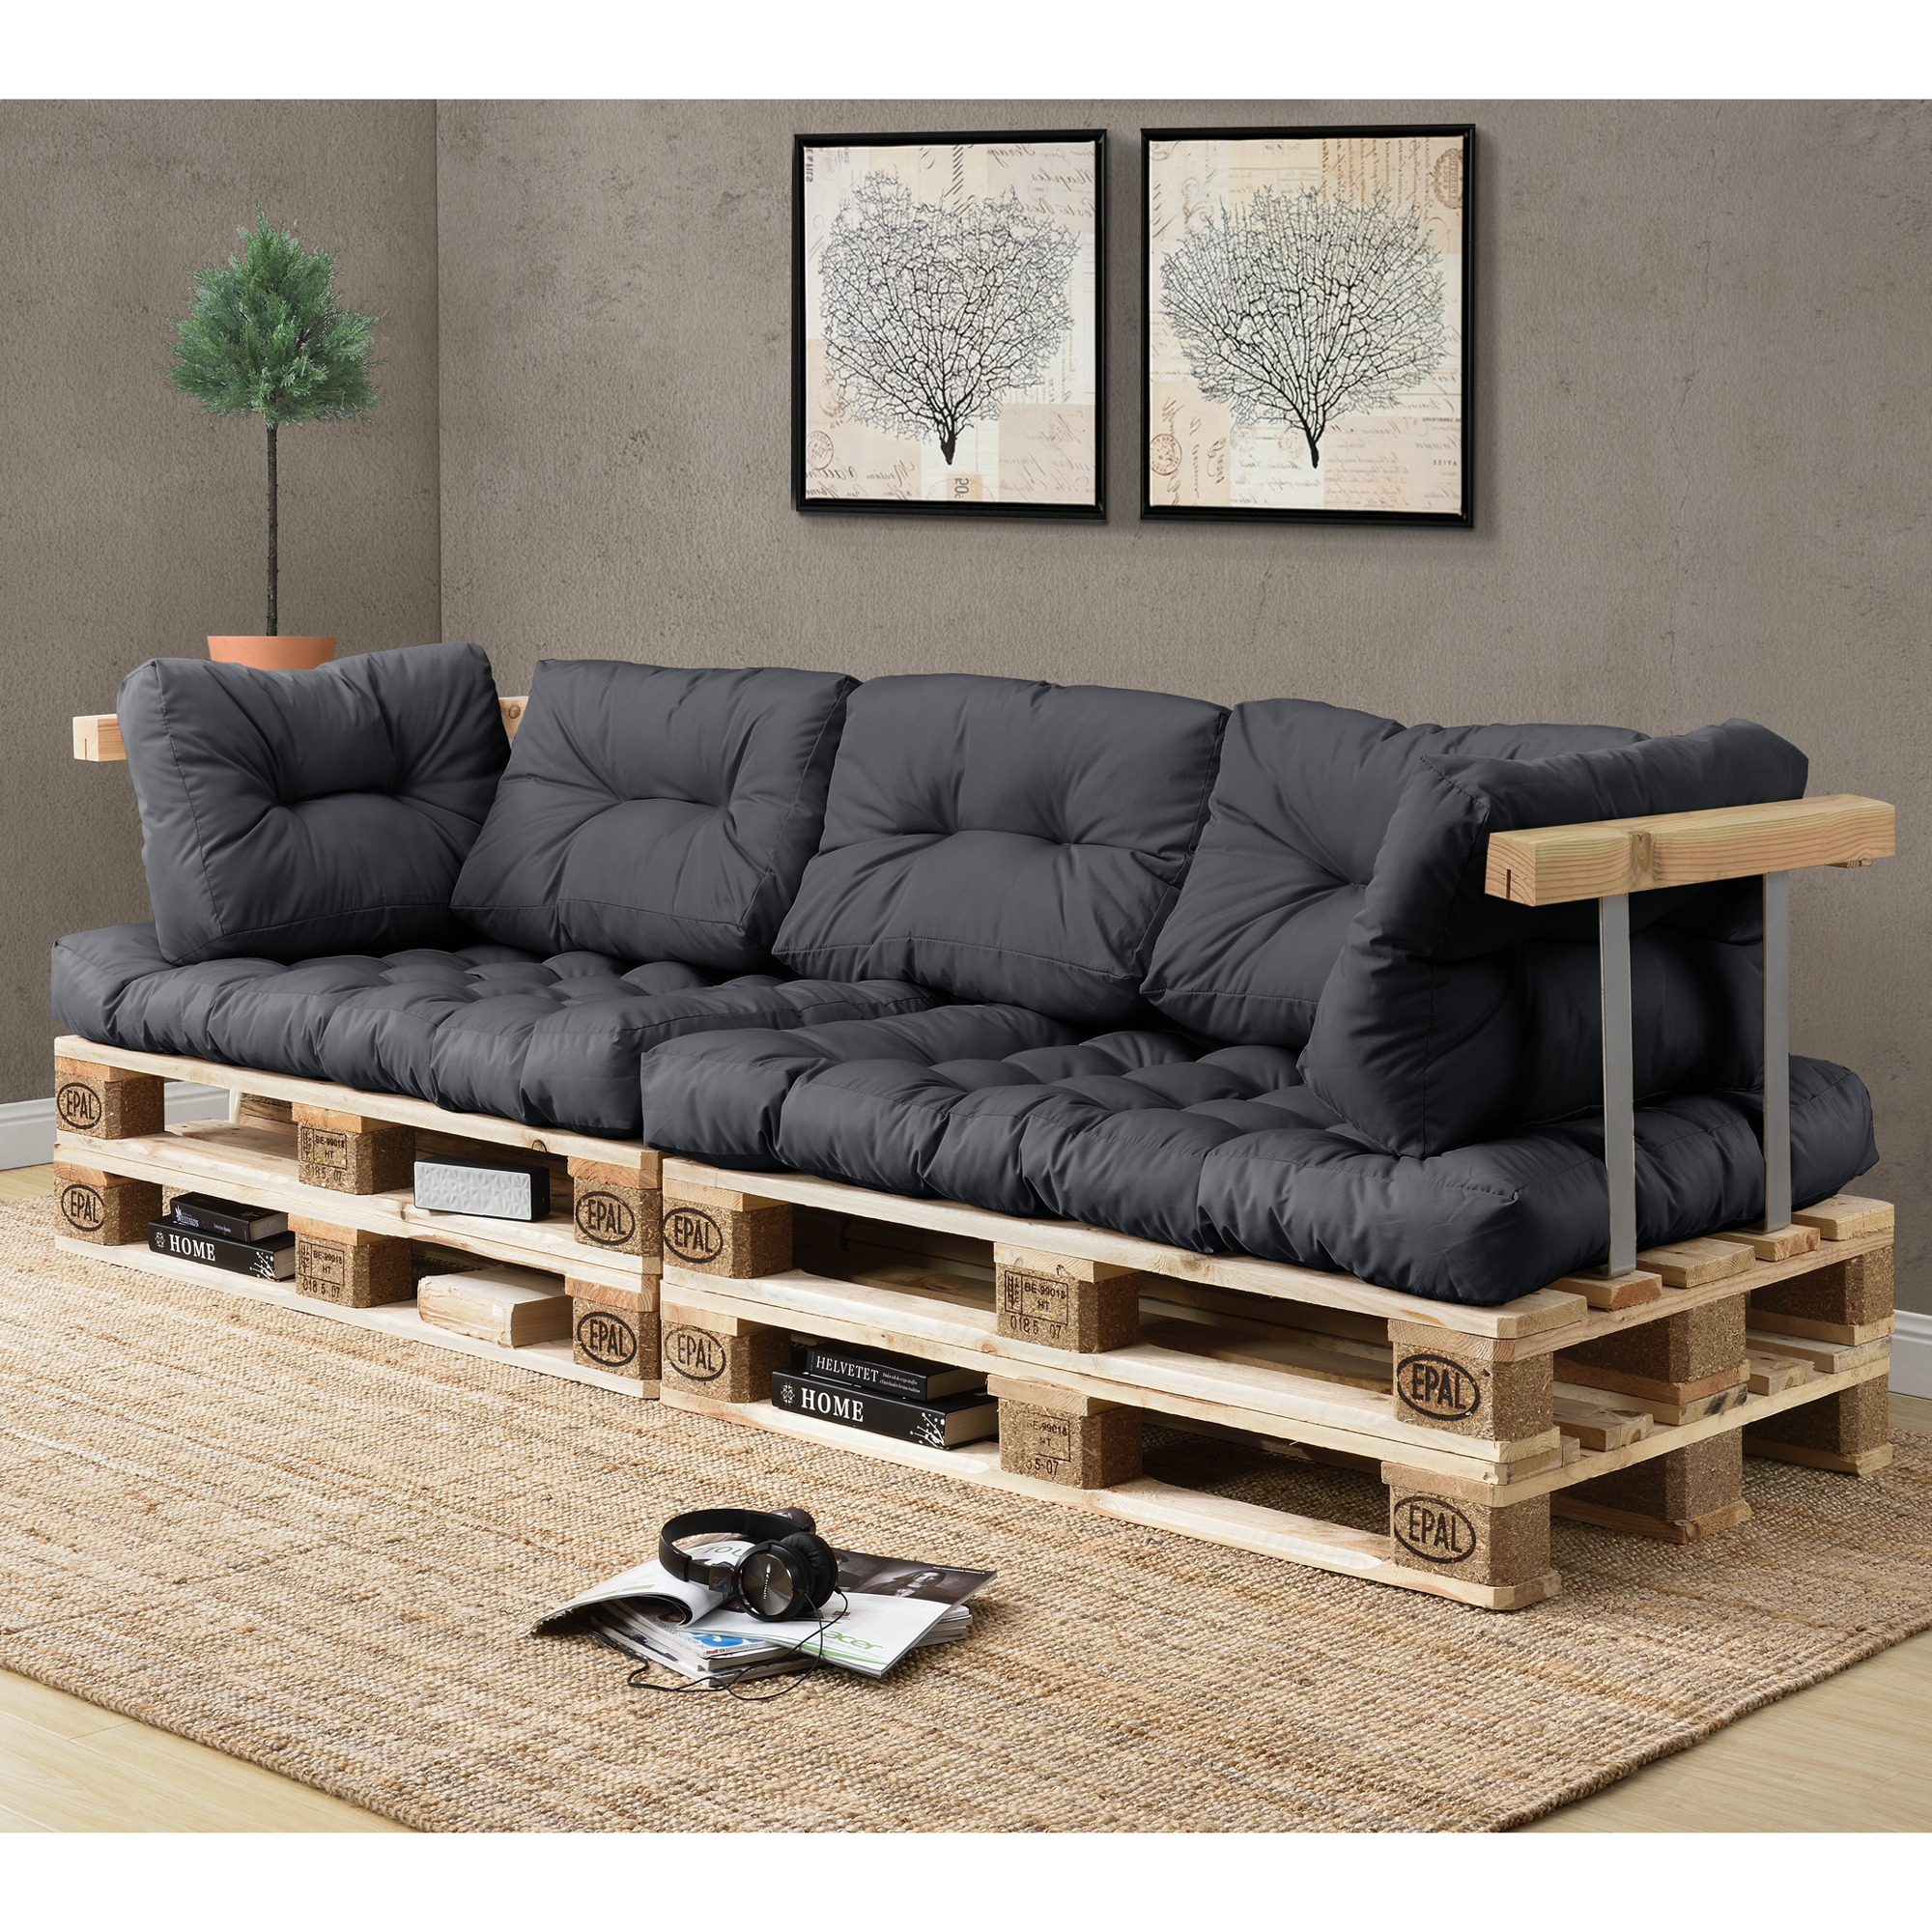 palettenkissen in outdoor paletten kissen sofa. Black Bedroom Furniture Sets. Home Design Ideas